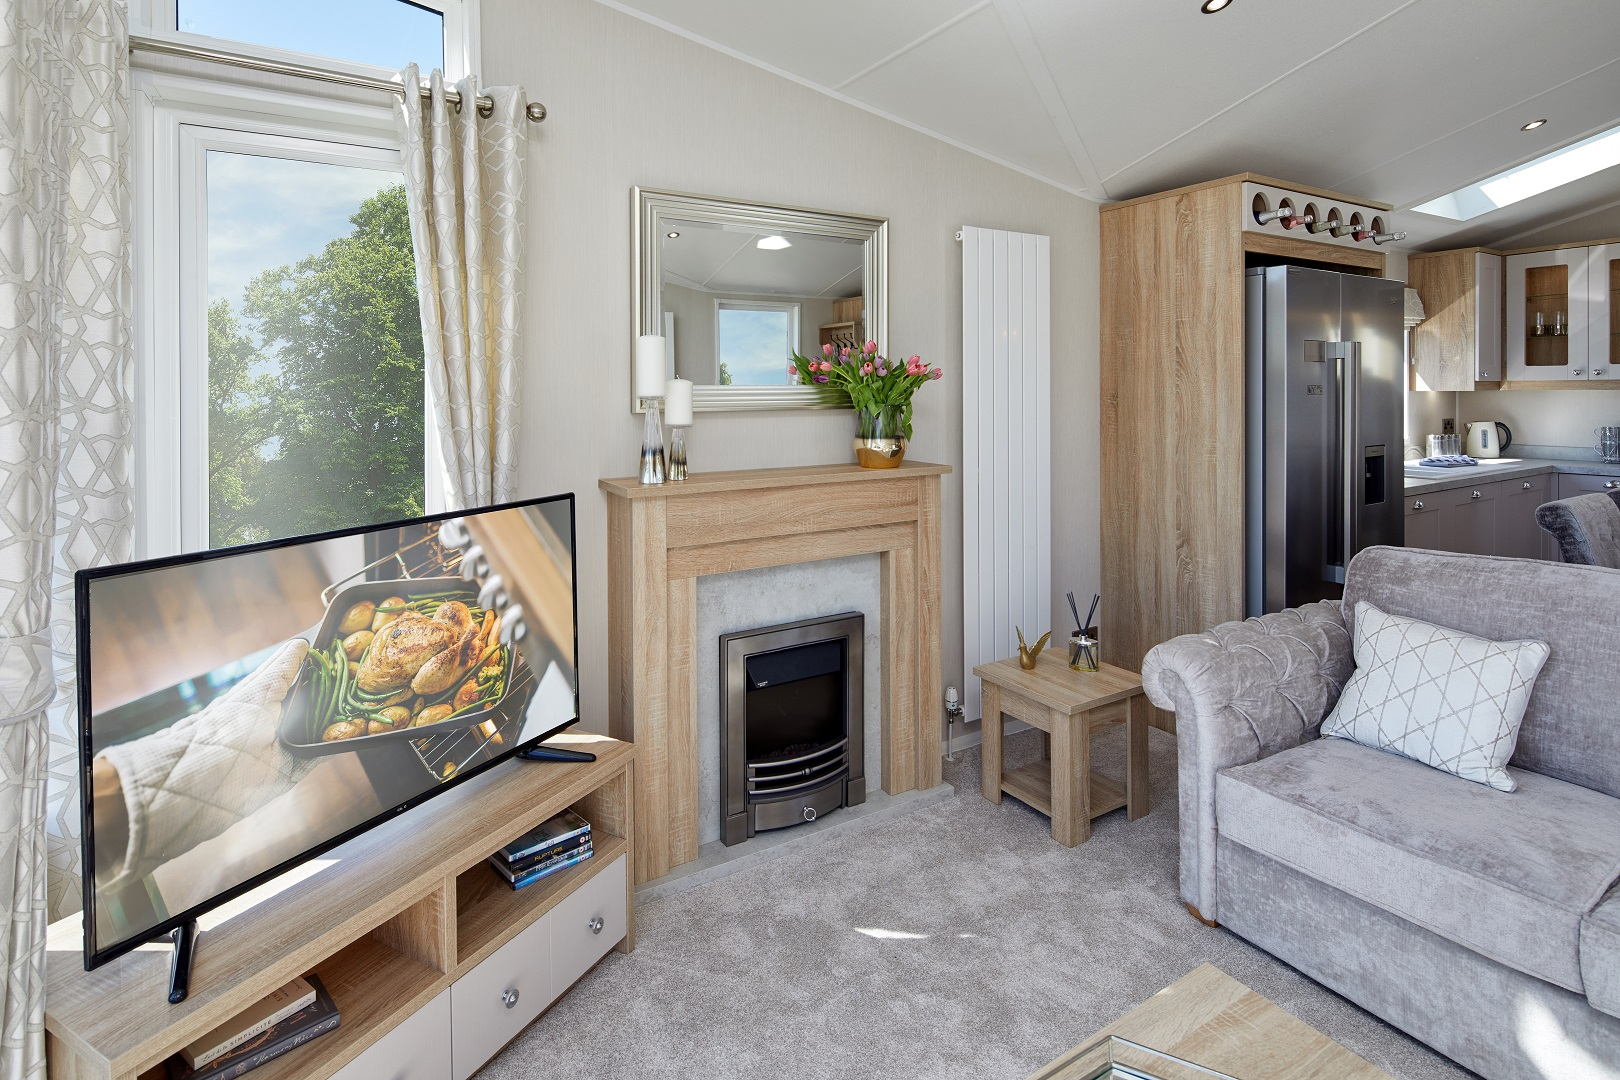 Willerby Vogue Classique: New Static Caravans and Holiday Homes for Sale, Clifton, Morpeth Image 1